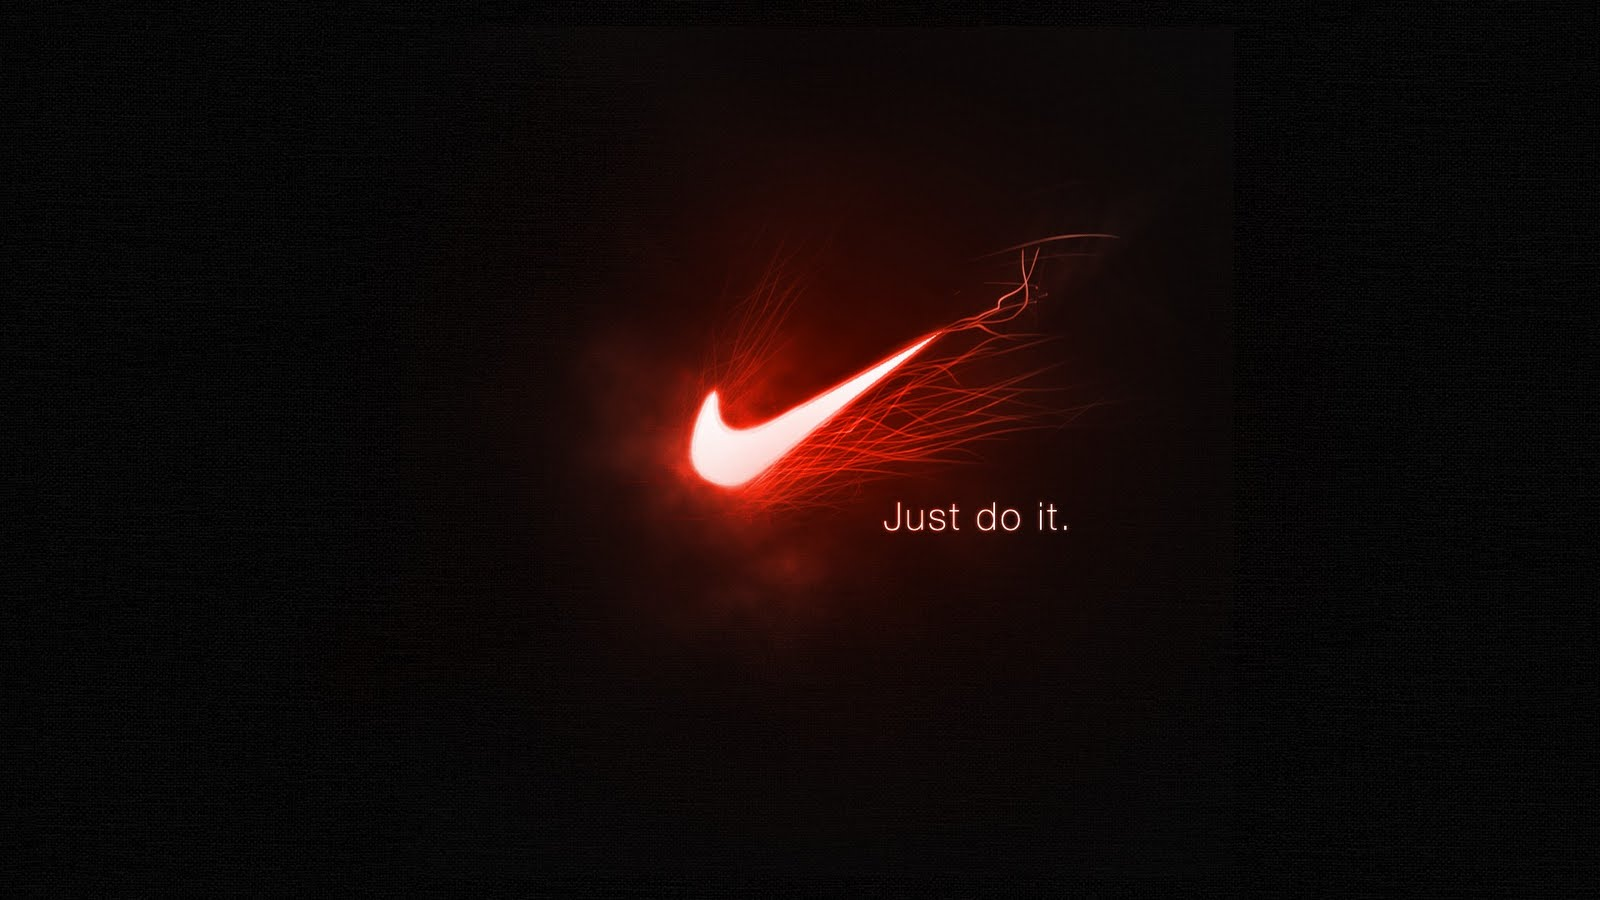 Nike Football Wallpaper 9153 Hd Wallpapers in Football   Imagescicom 1600x900